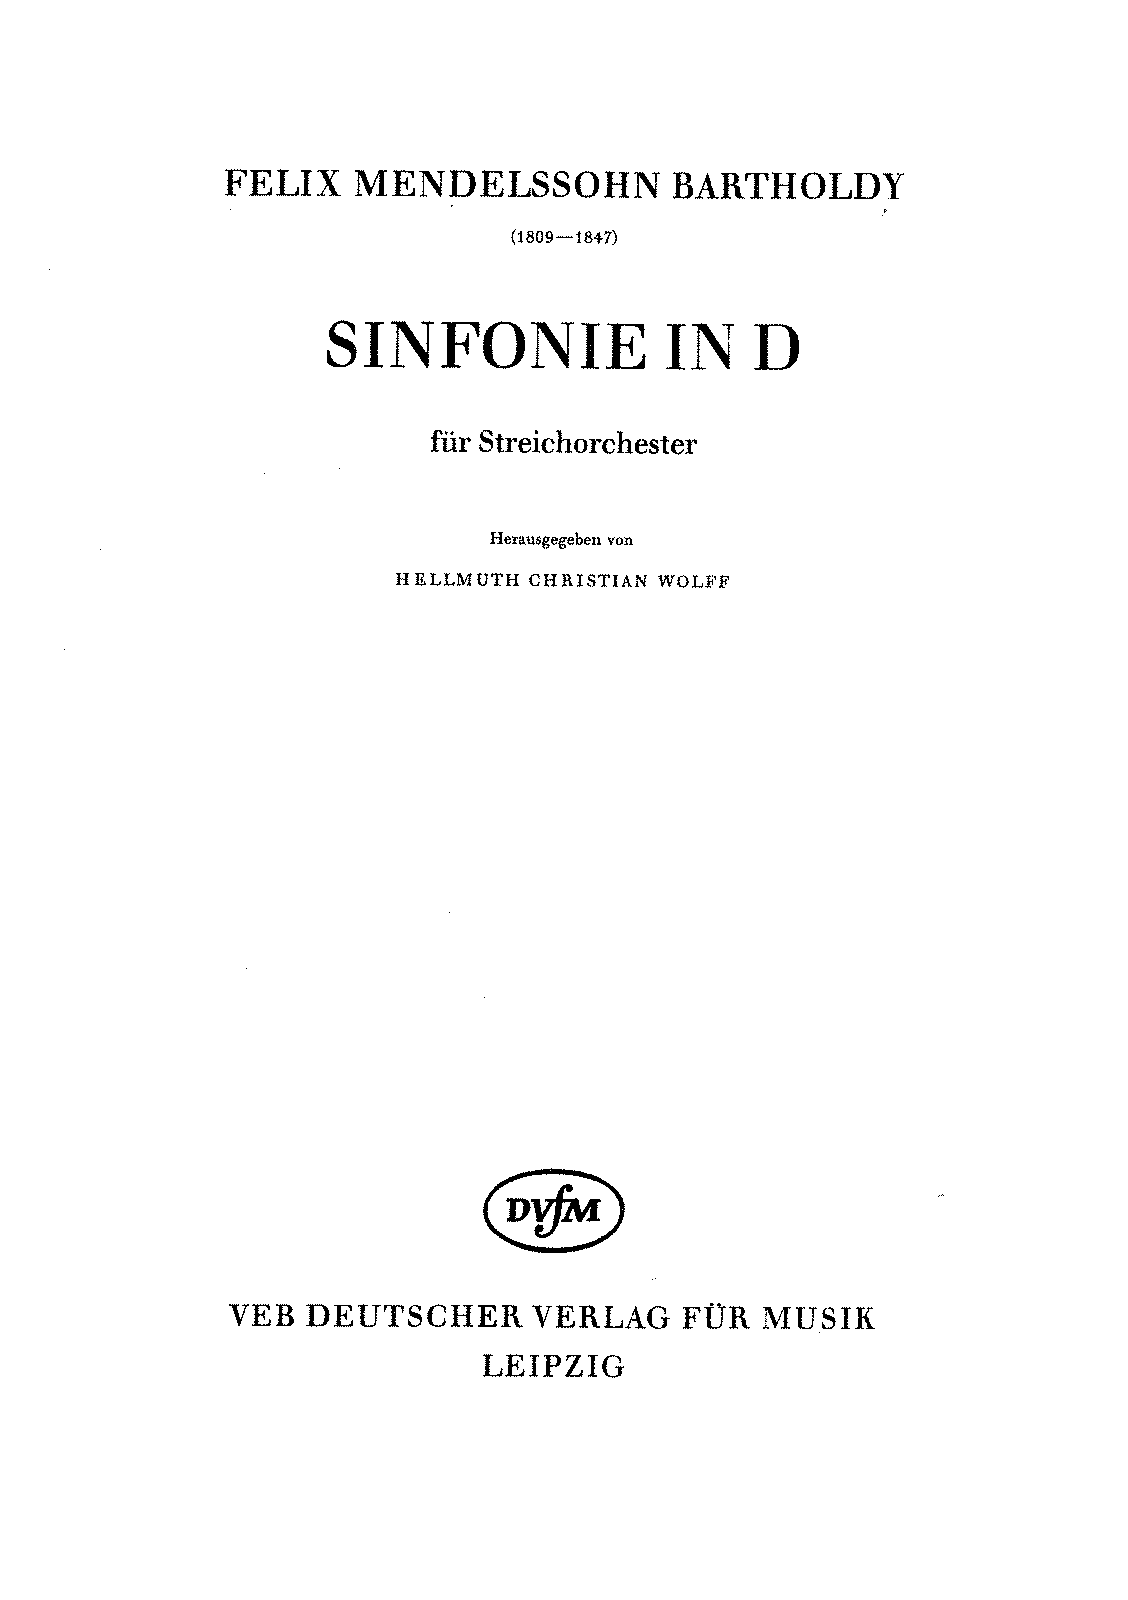 PMLP207414-Mendelssohn, Felix - Sinfonia for String no. 08 in D major MWV N 8.pdf